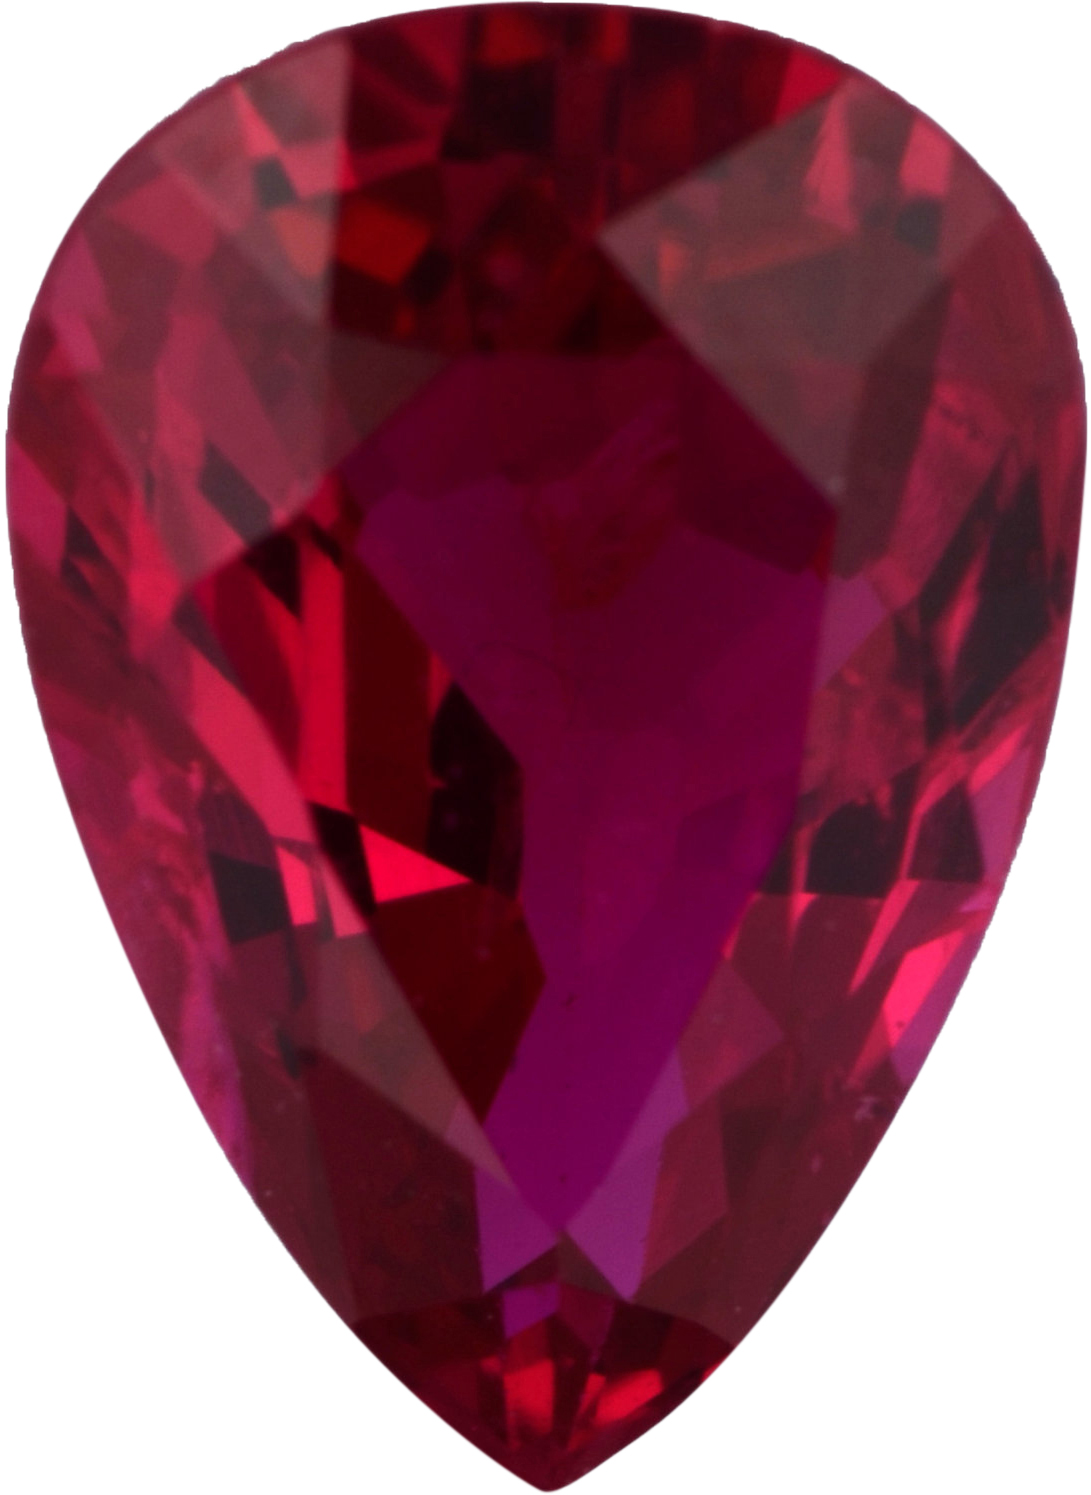 Bargain Priced Ruby Loose Gem in Pear Cut, Vibrant Purple Red, 7.50 x 5.20  mm, 1.01 Carats